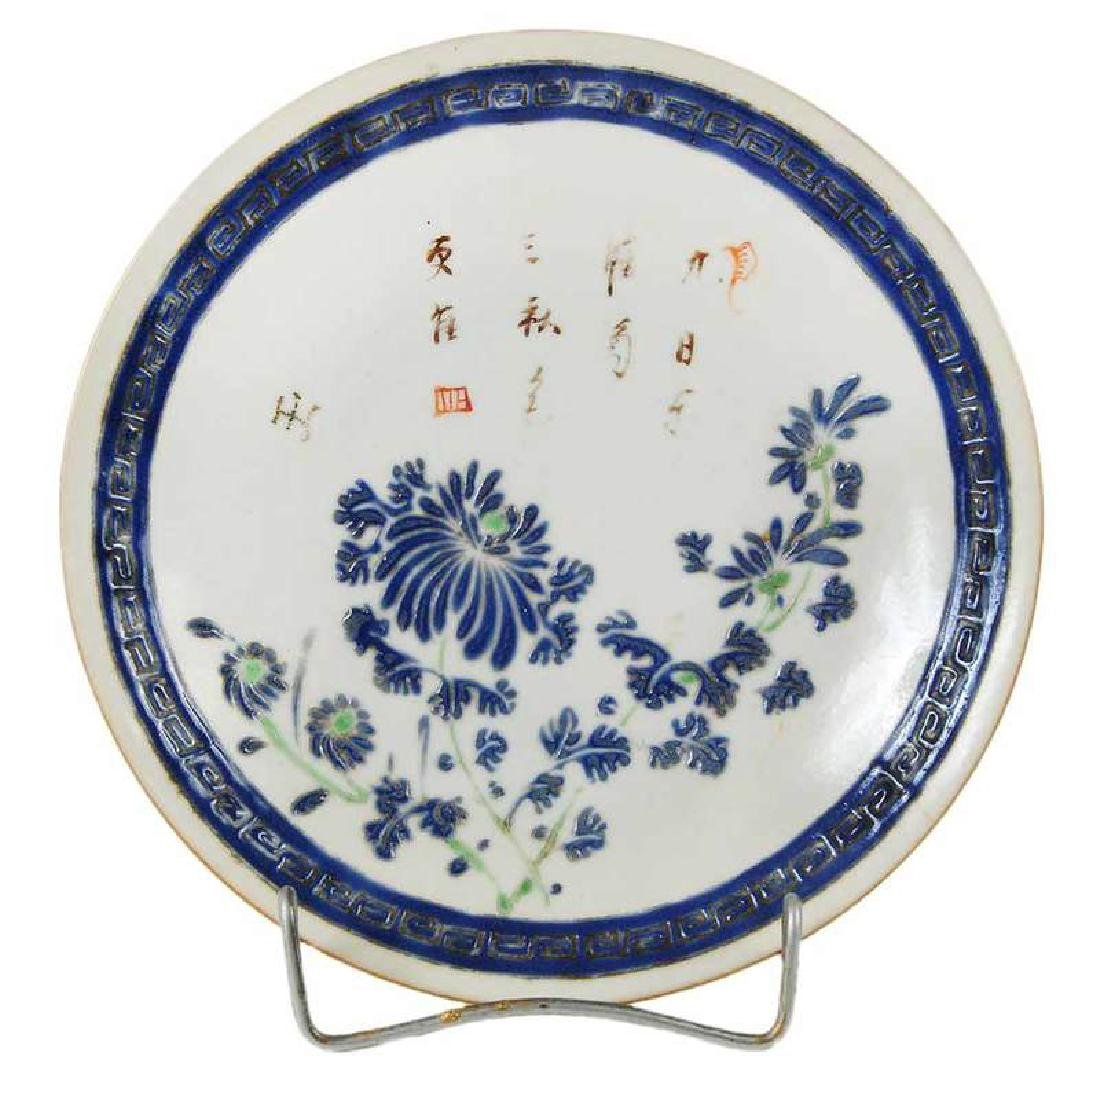 Chinese Porcelain Small Plate with Poem